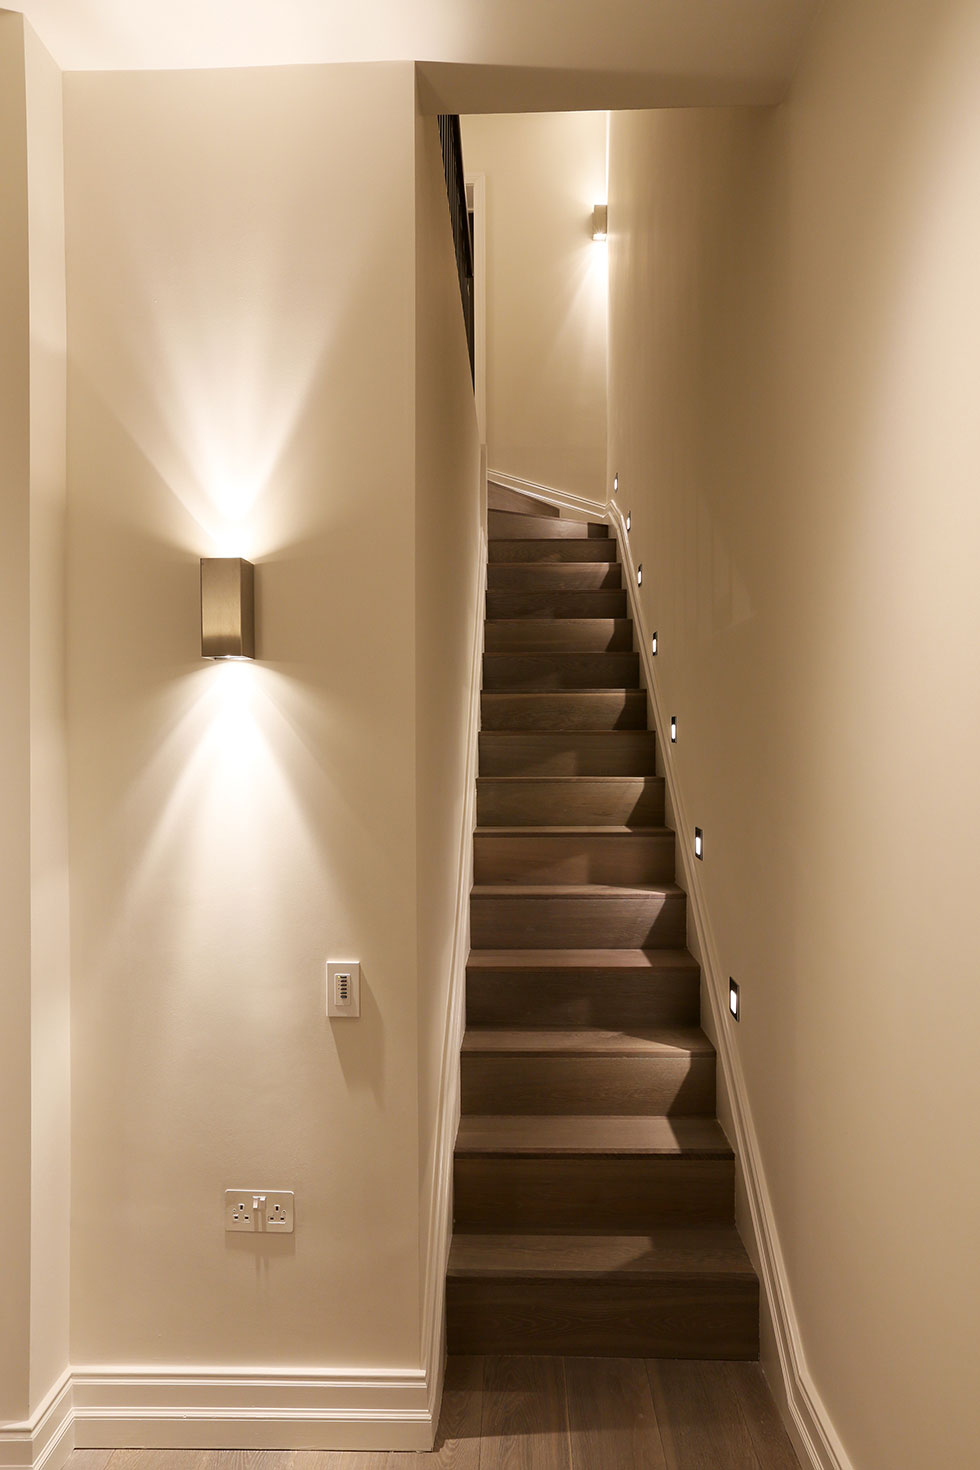 Adding Wall Lights To A Room : Home design trends for 2016 - Real Homes